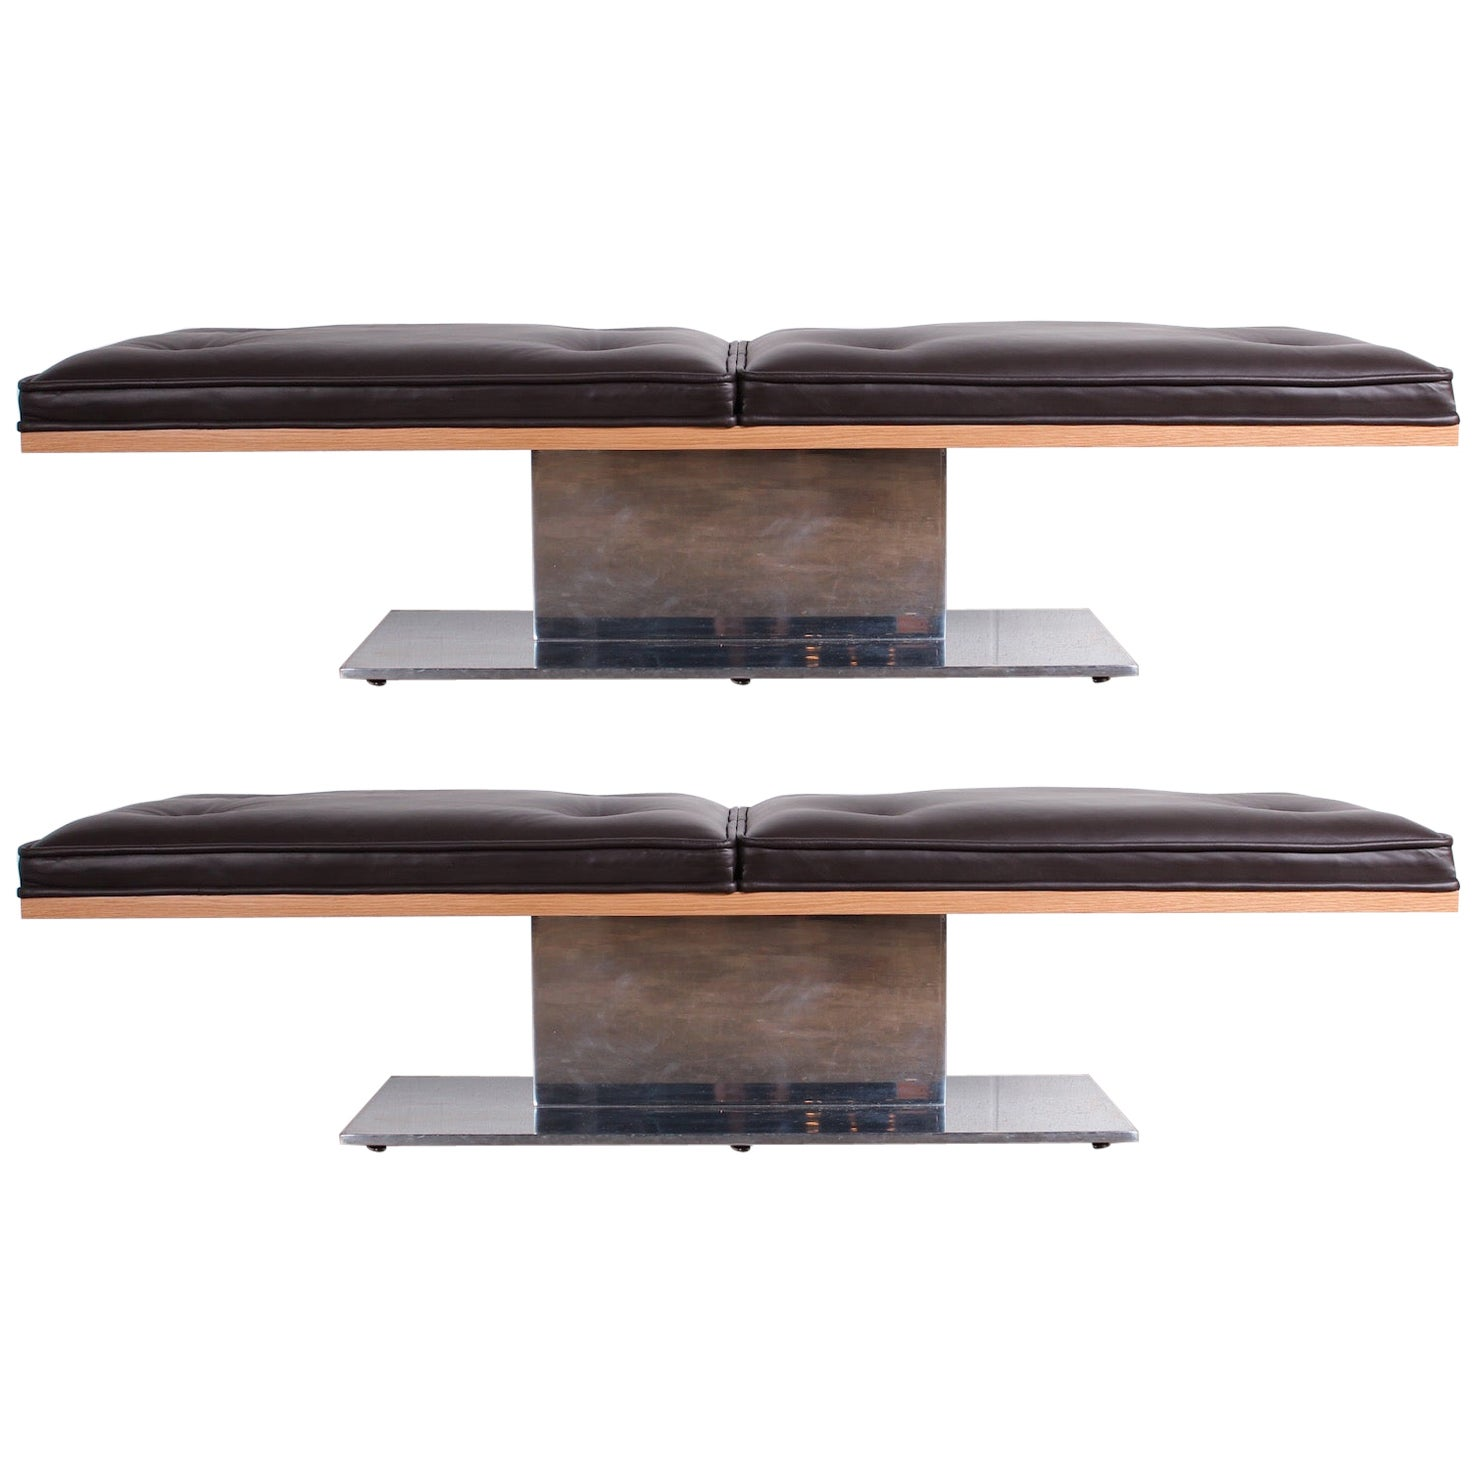 Pair of Benches by Warren Platner for Lehigh Leopold